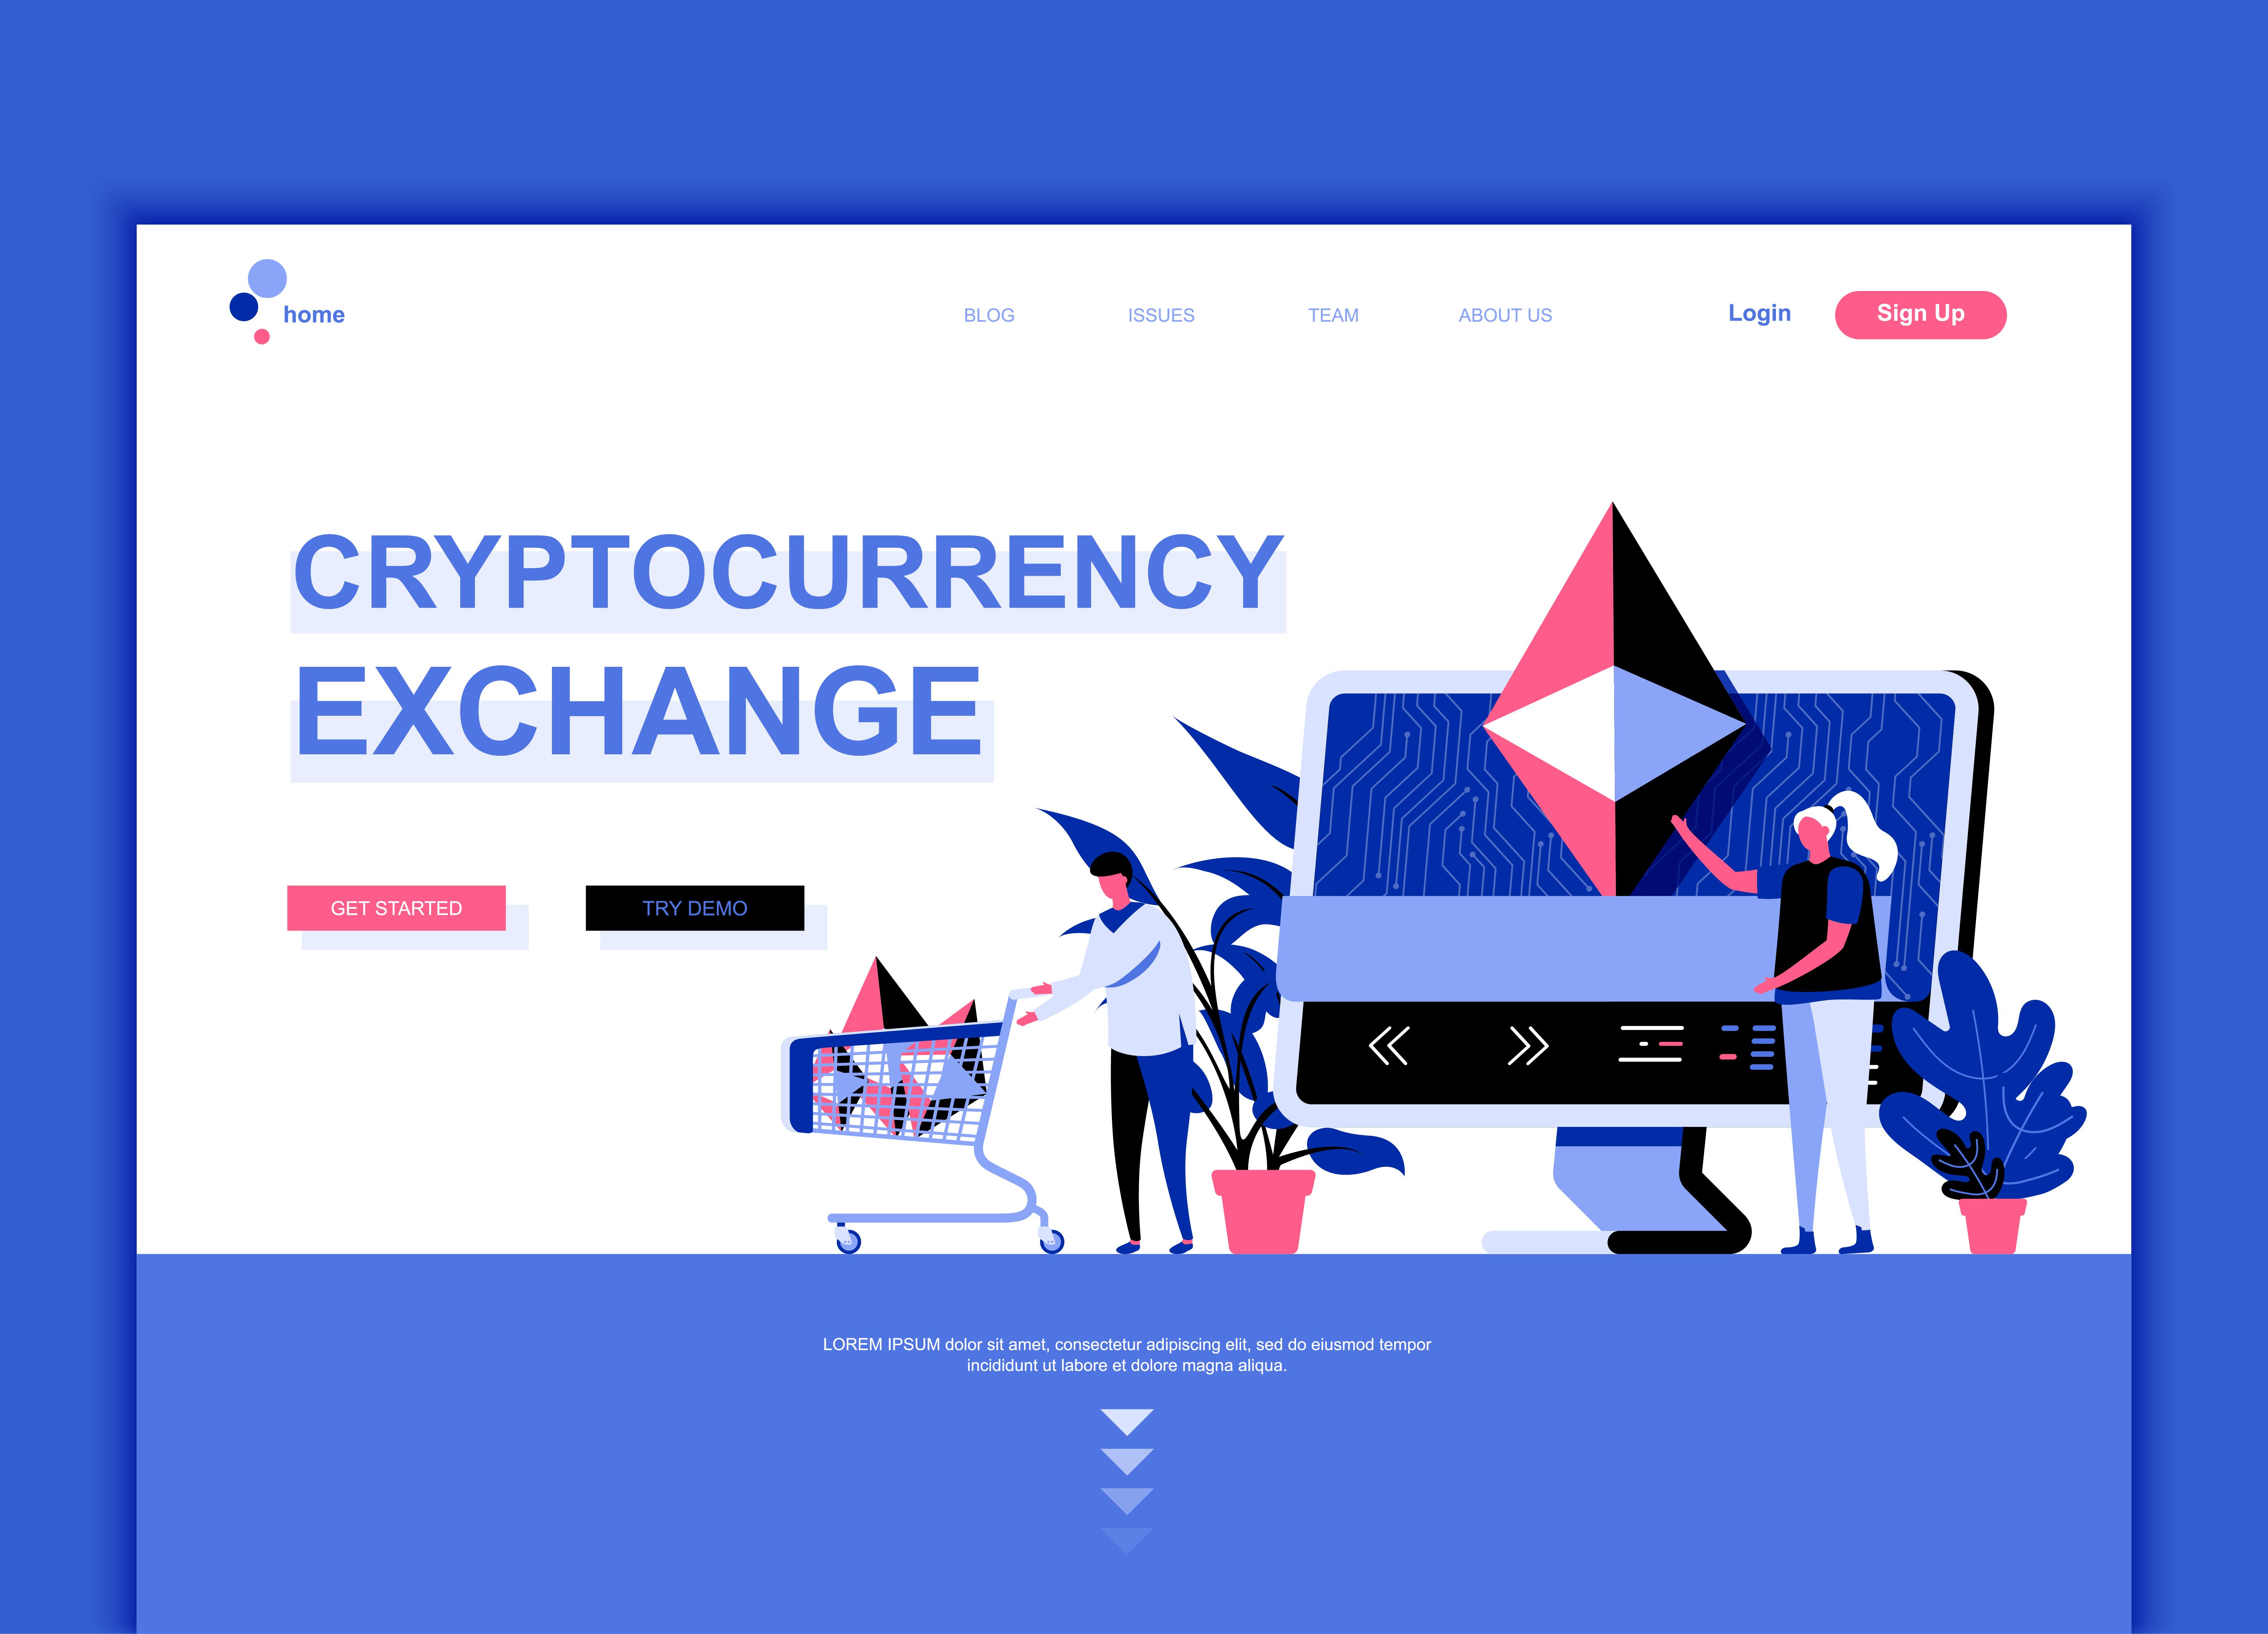 Cryptocurrency exchange trading group the modern investor